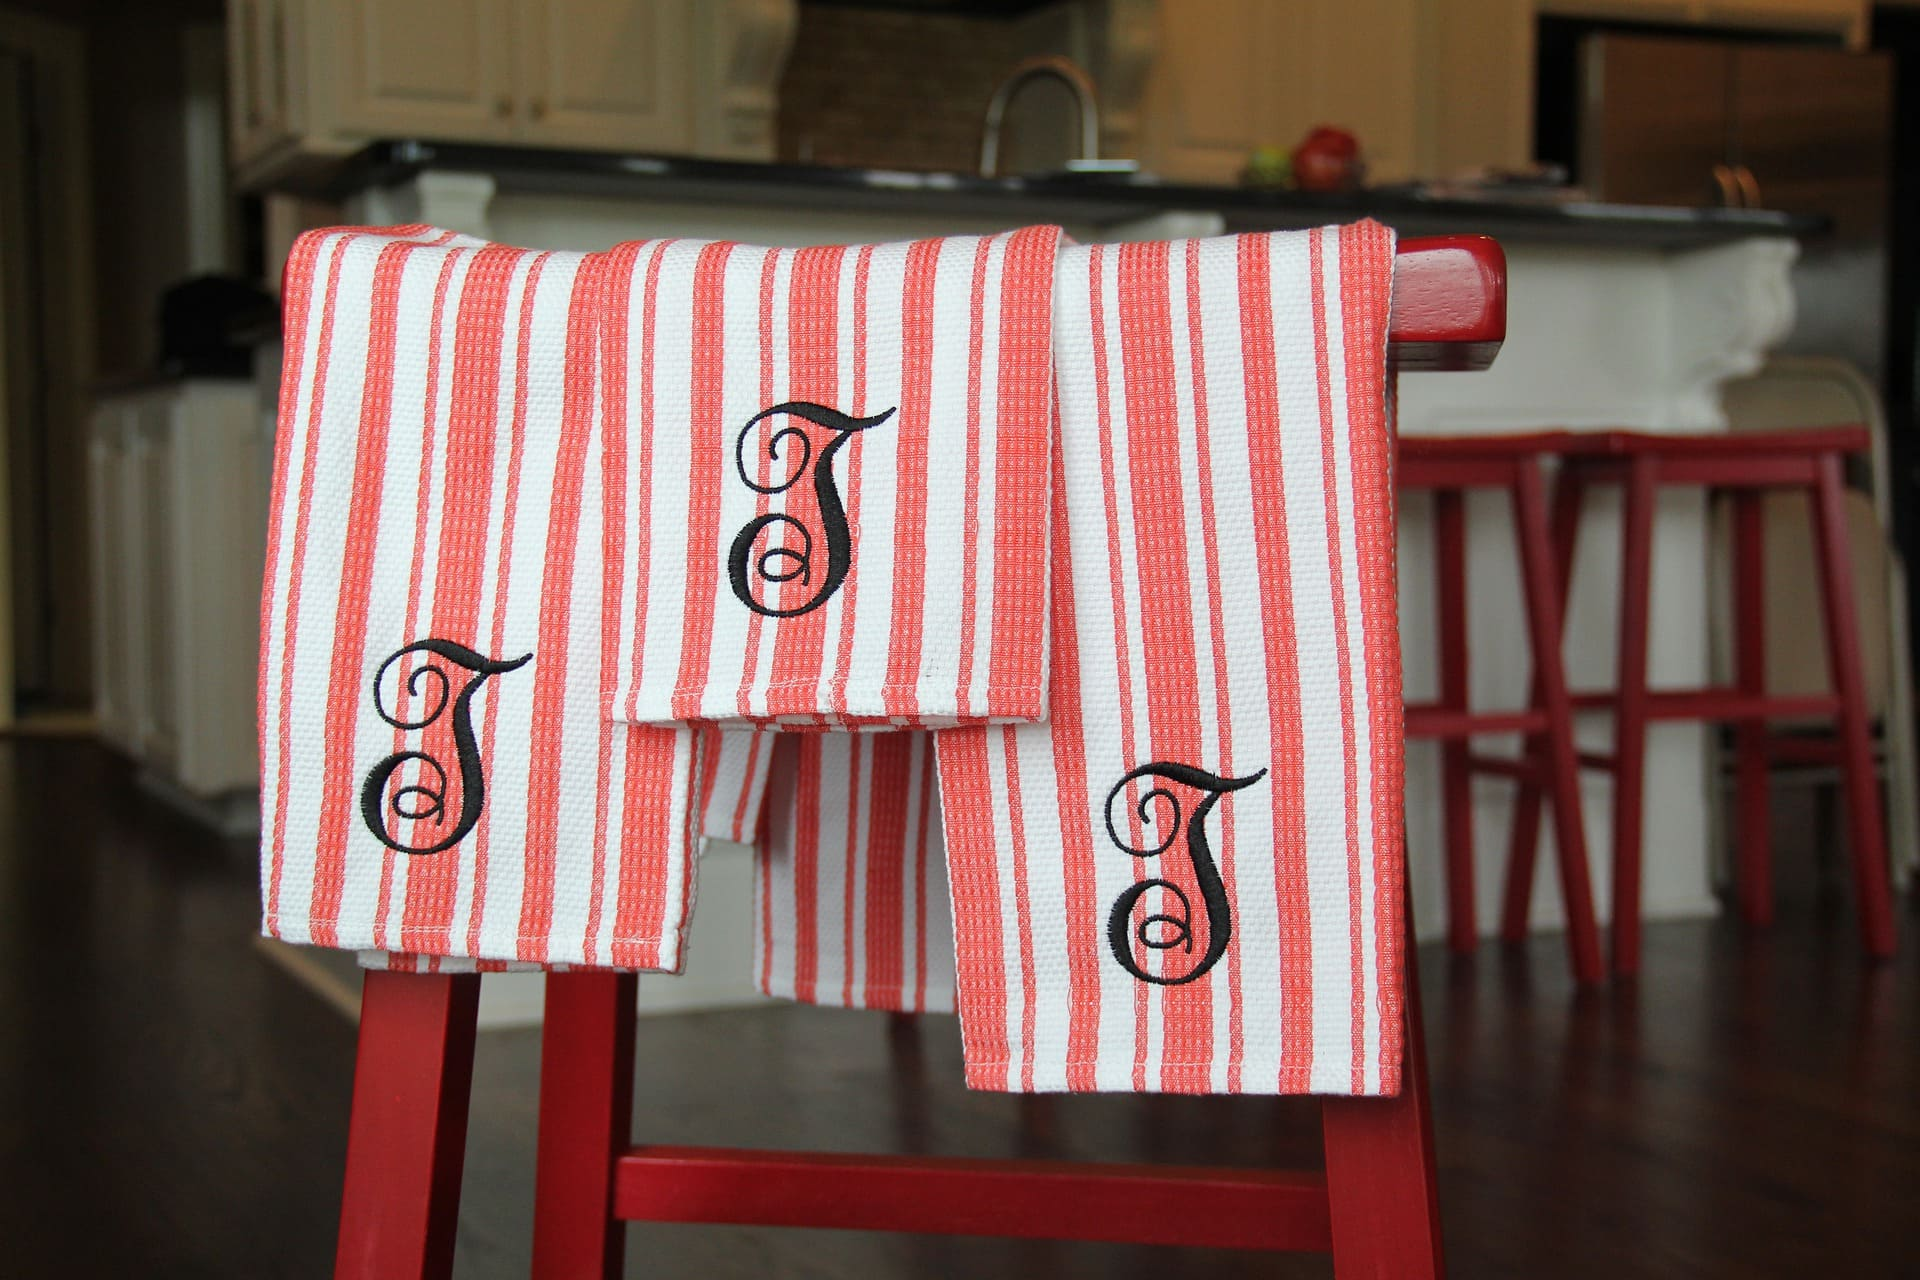 Customized Towel for her